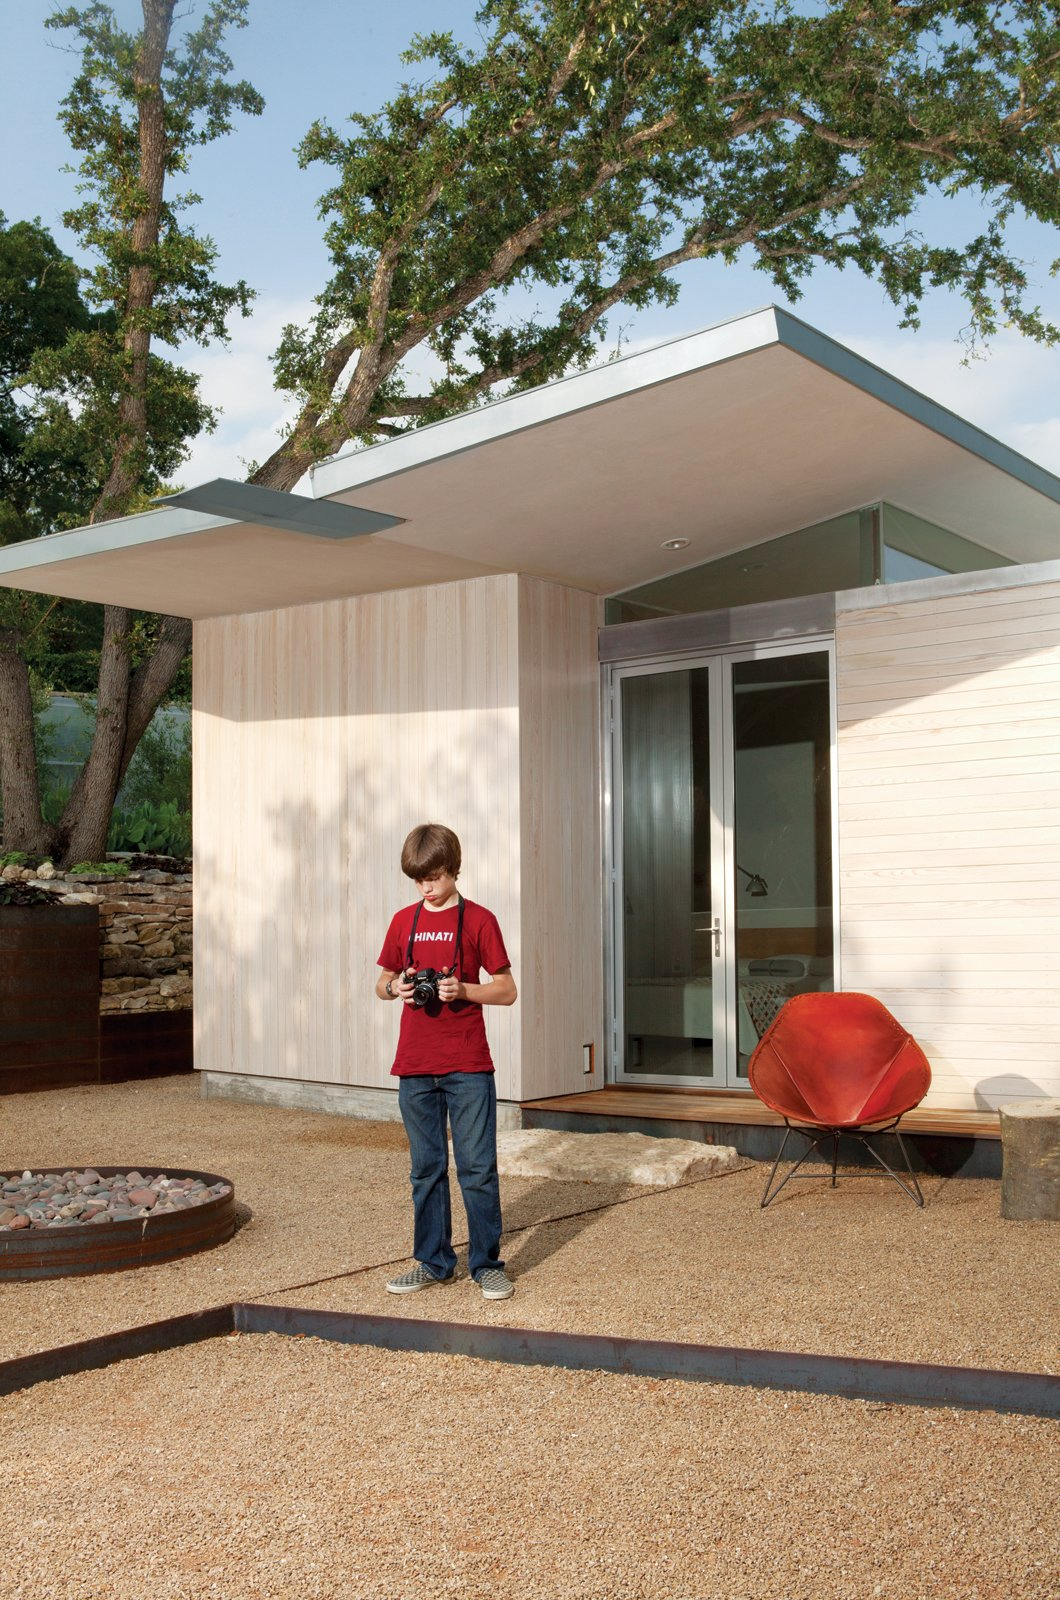 Articles about hillside mid century home renovation texas on Dwell.com